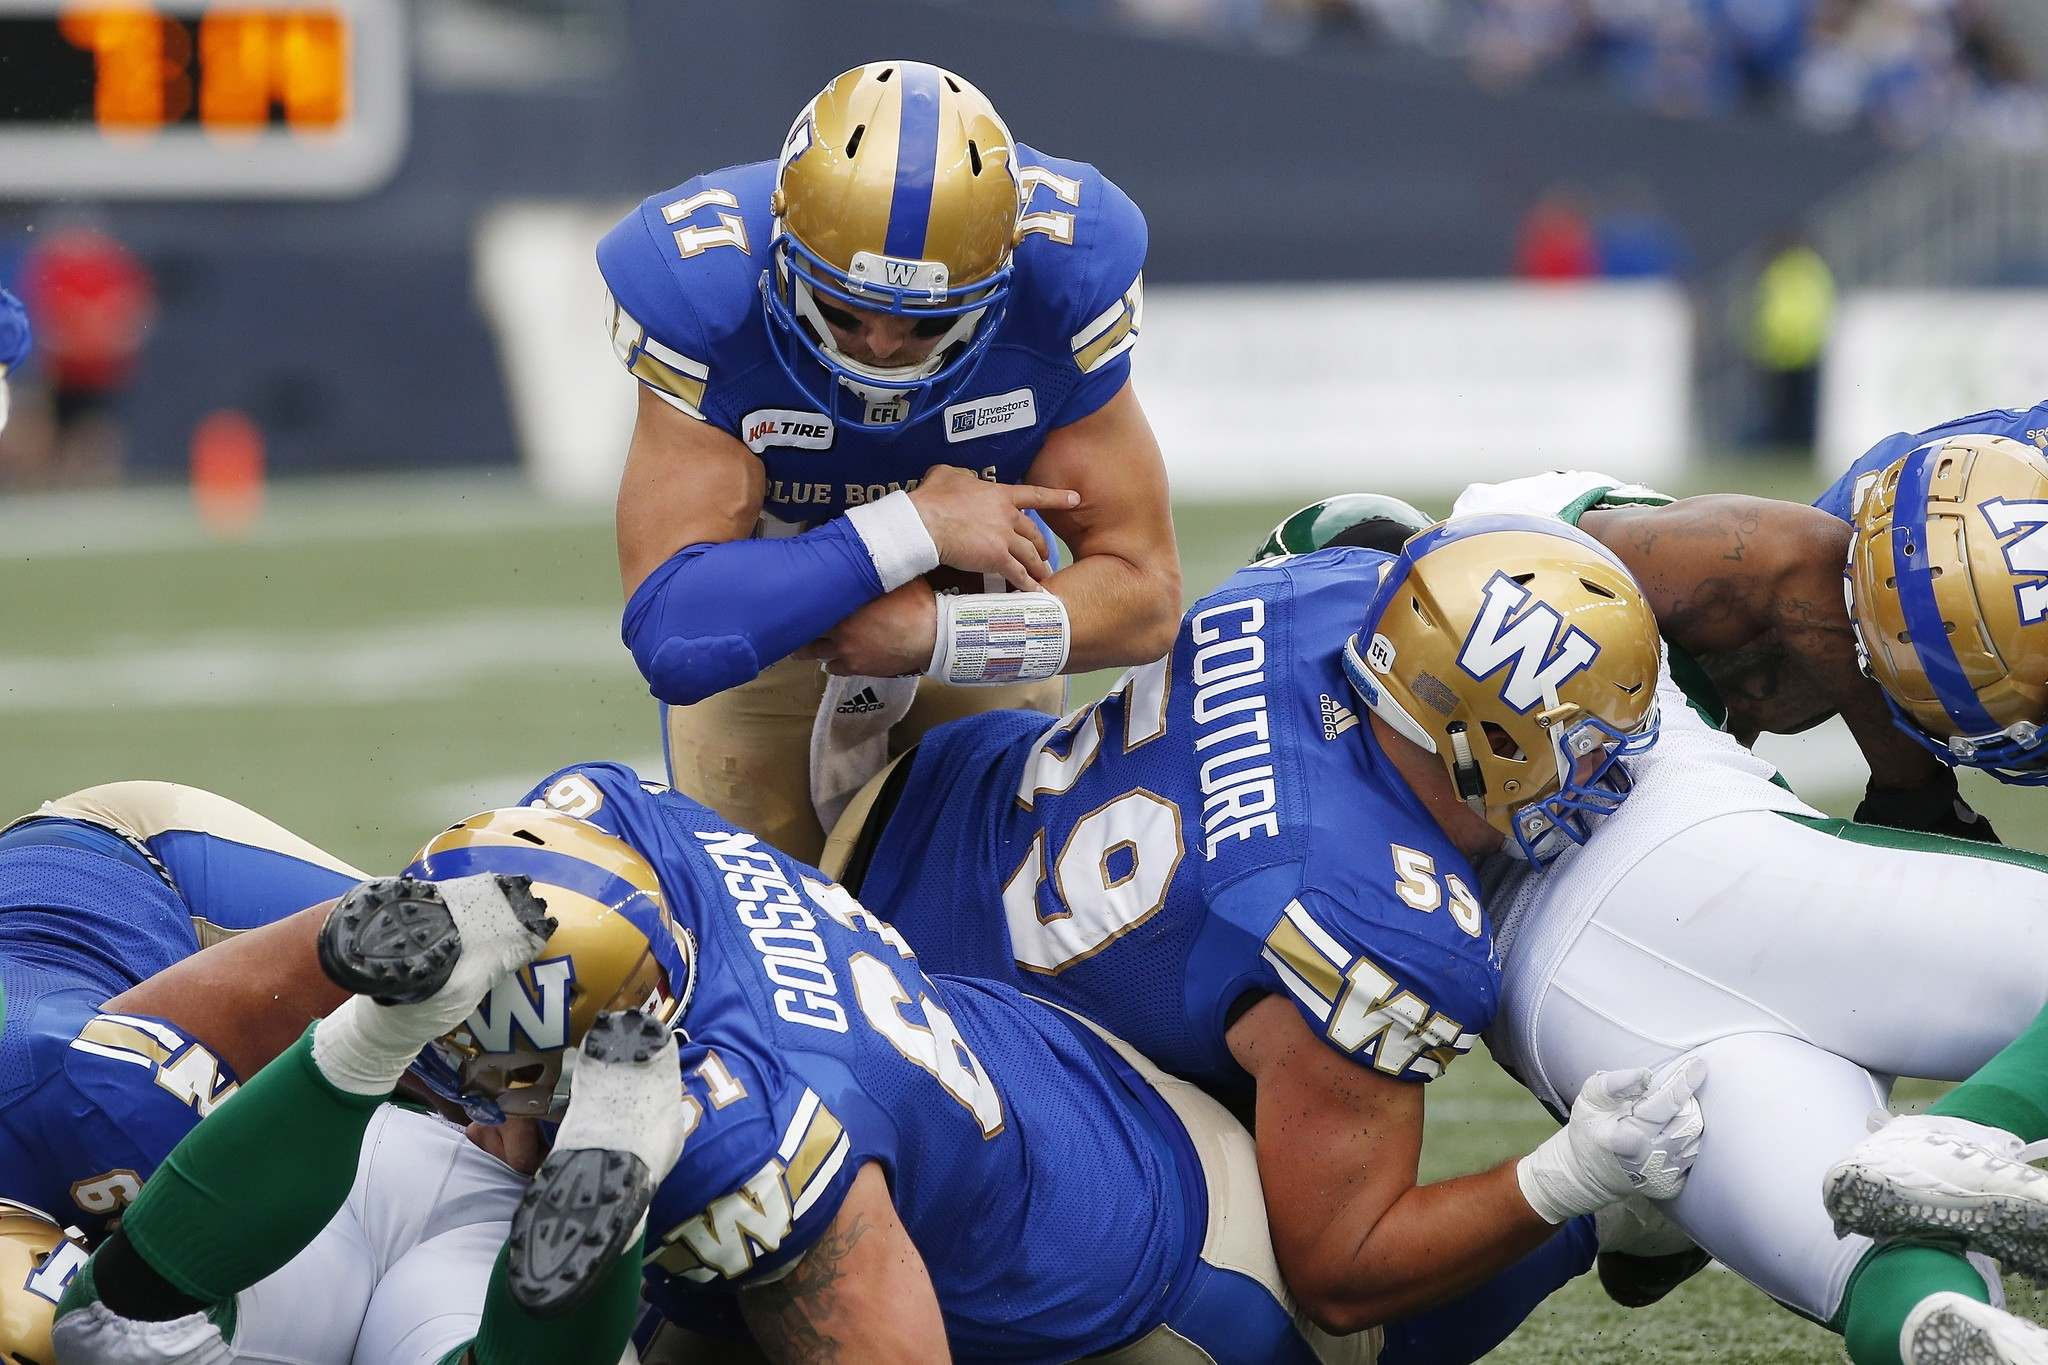 John Woods / The Canadian Press</p><p>Bombers backup quarterback Chris Streveler scores a touchdown during Saturday&rsquo;s game against Saskatchewan.</p></p>